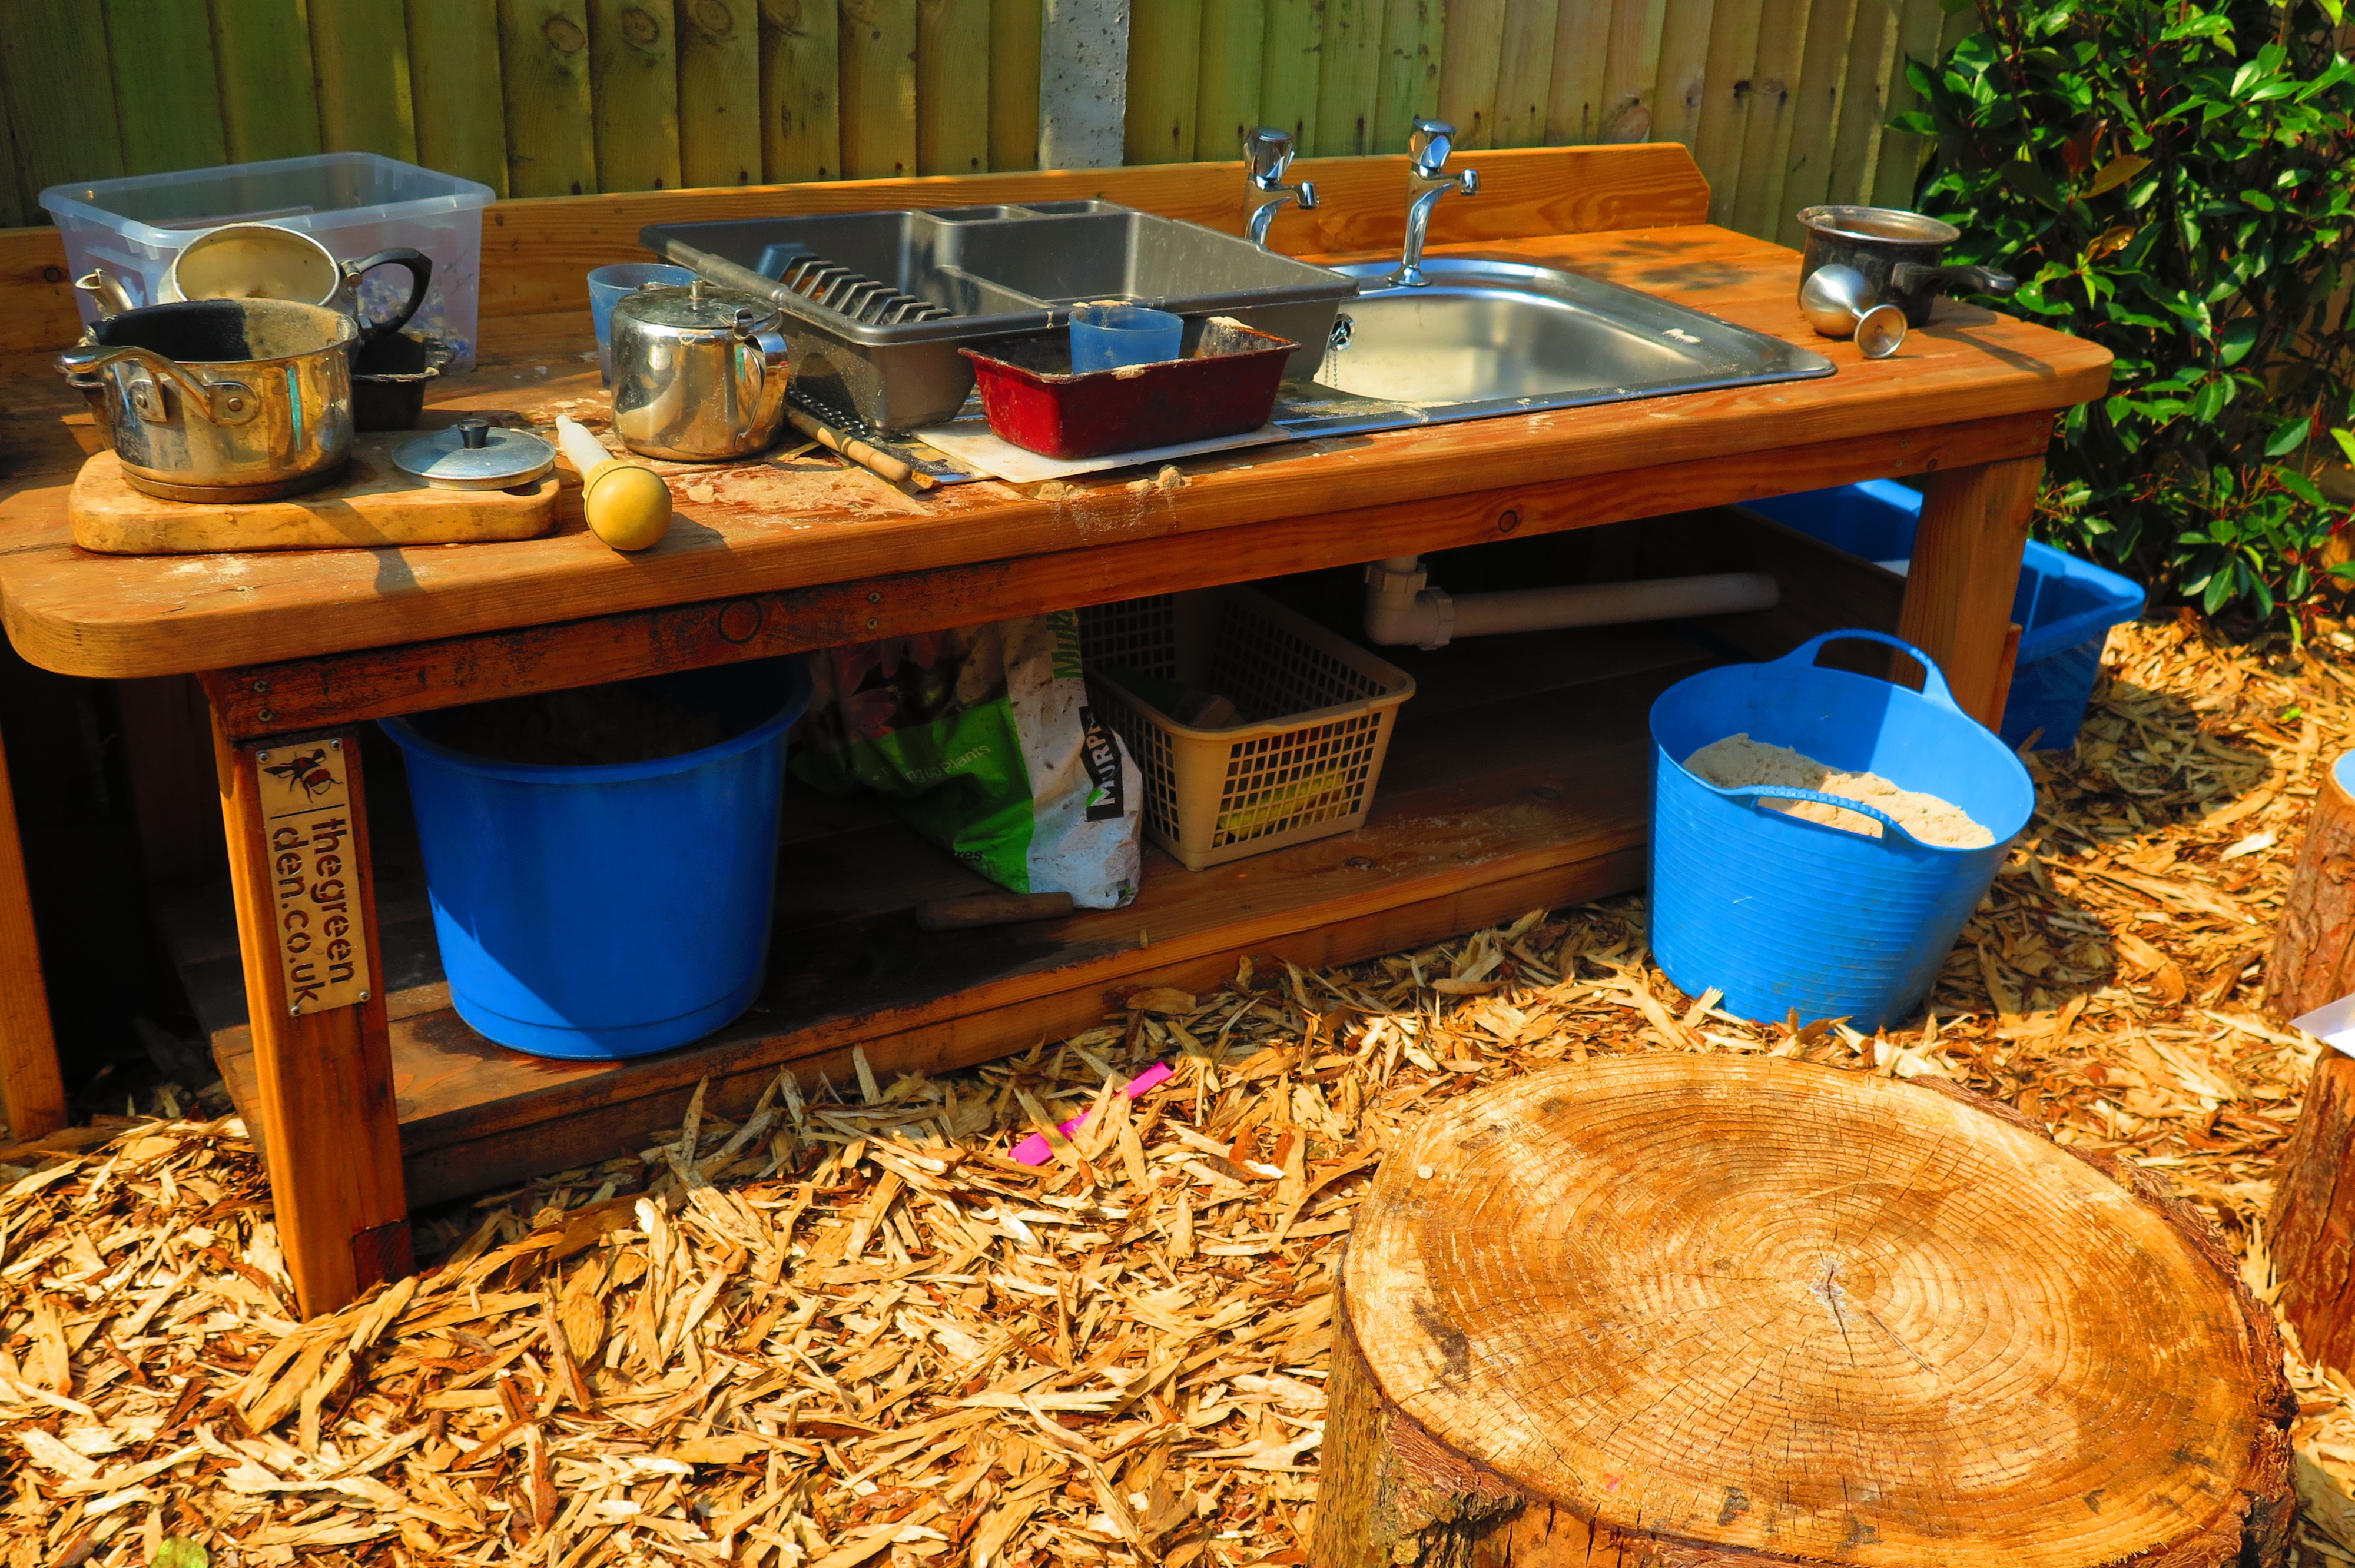 Mud Sink - Green Play Project